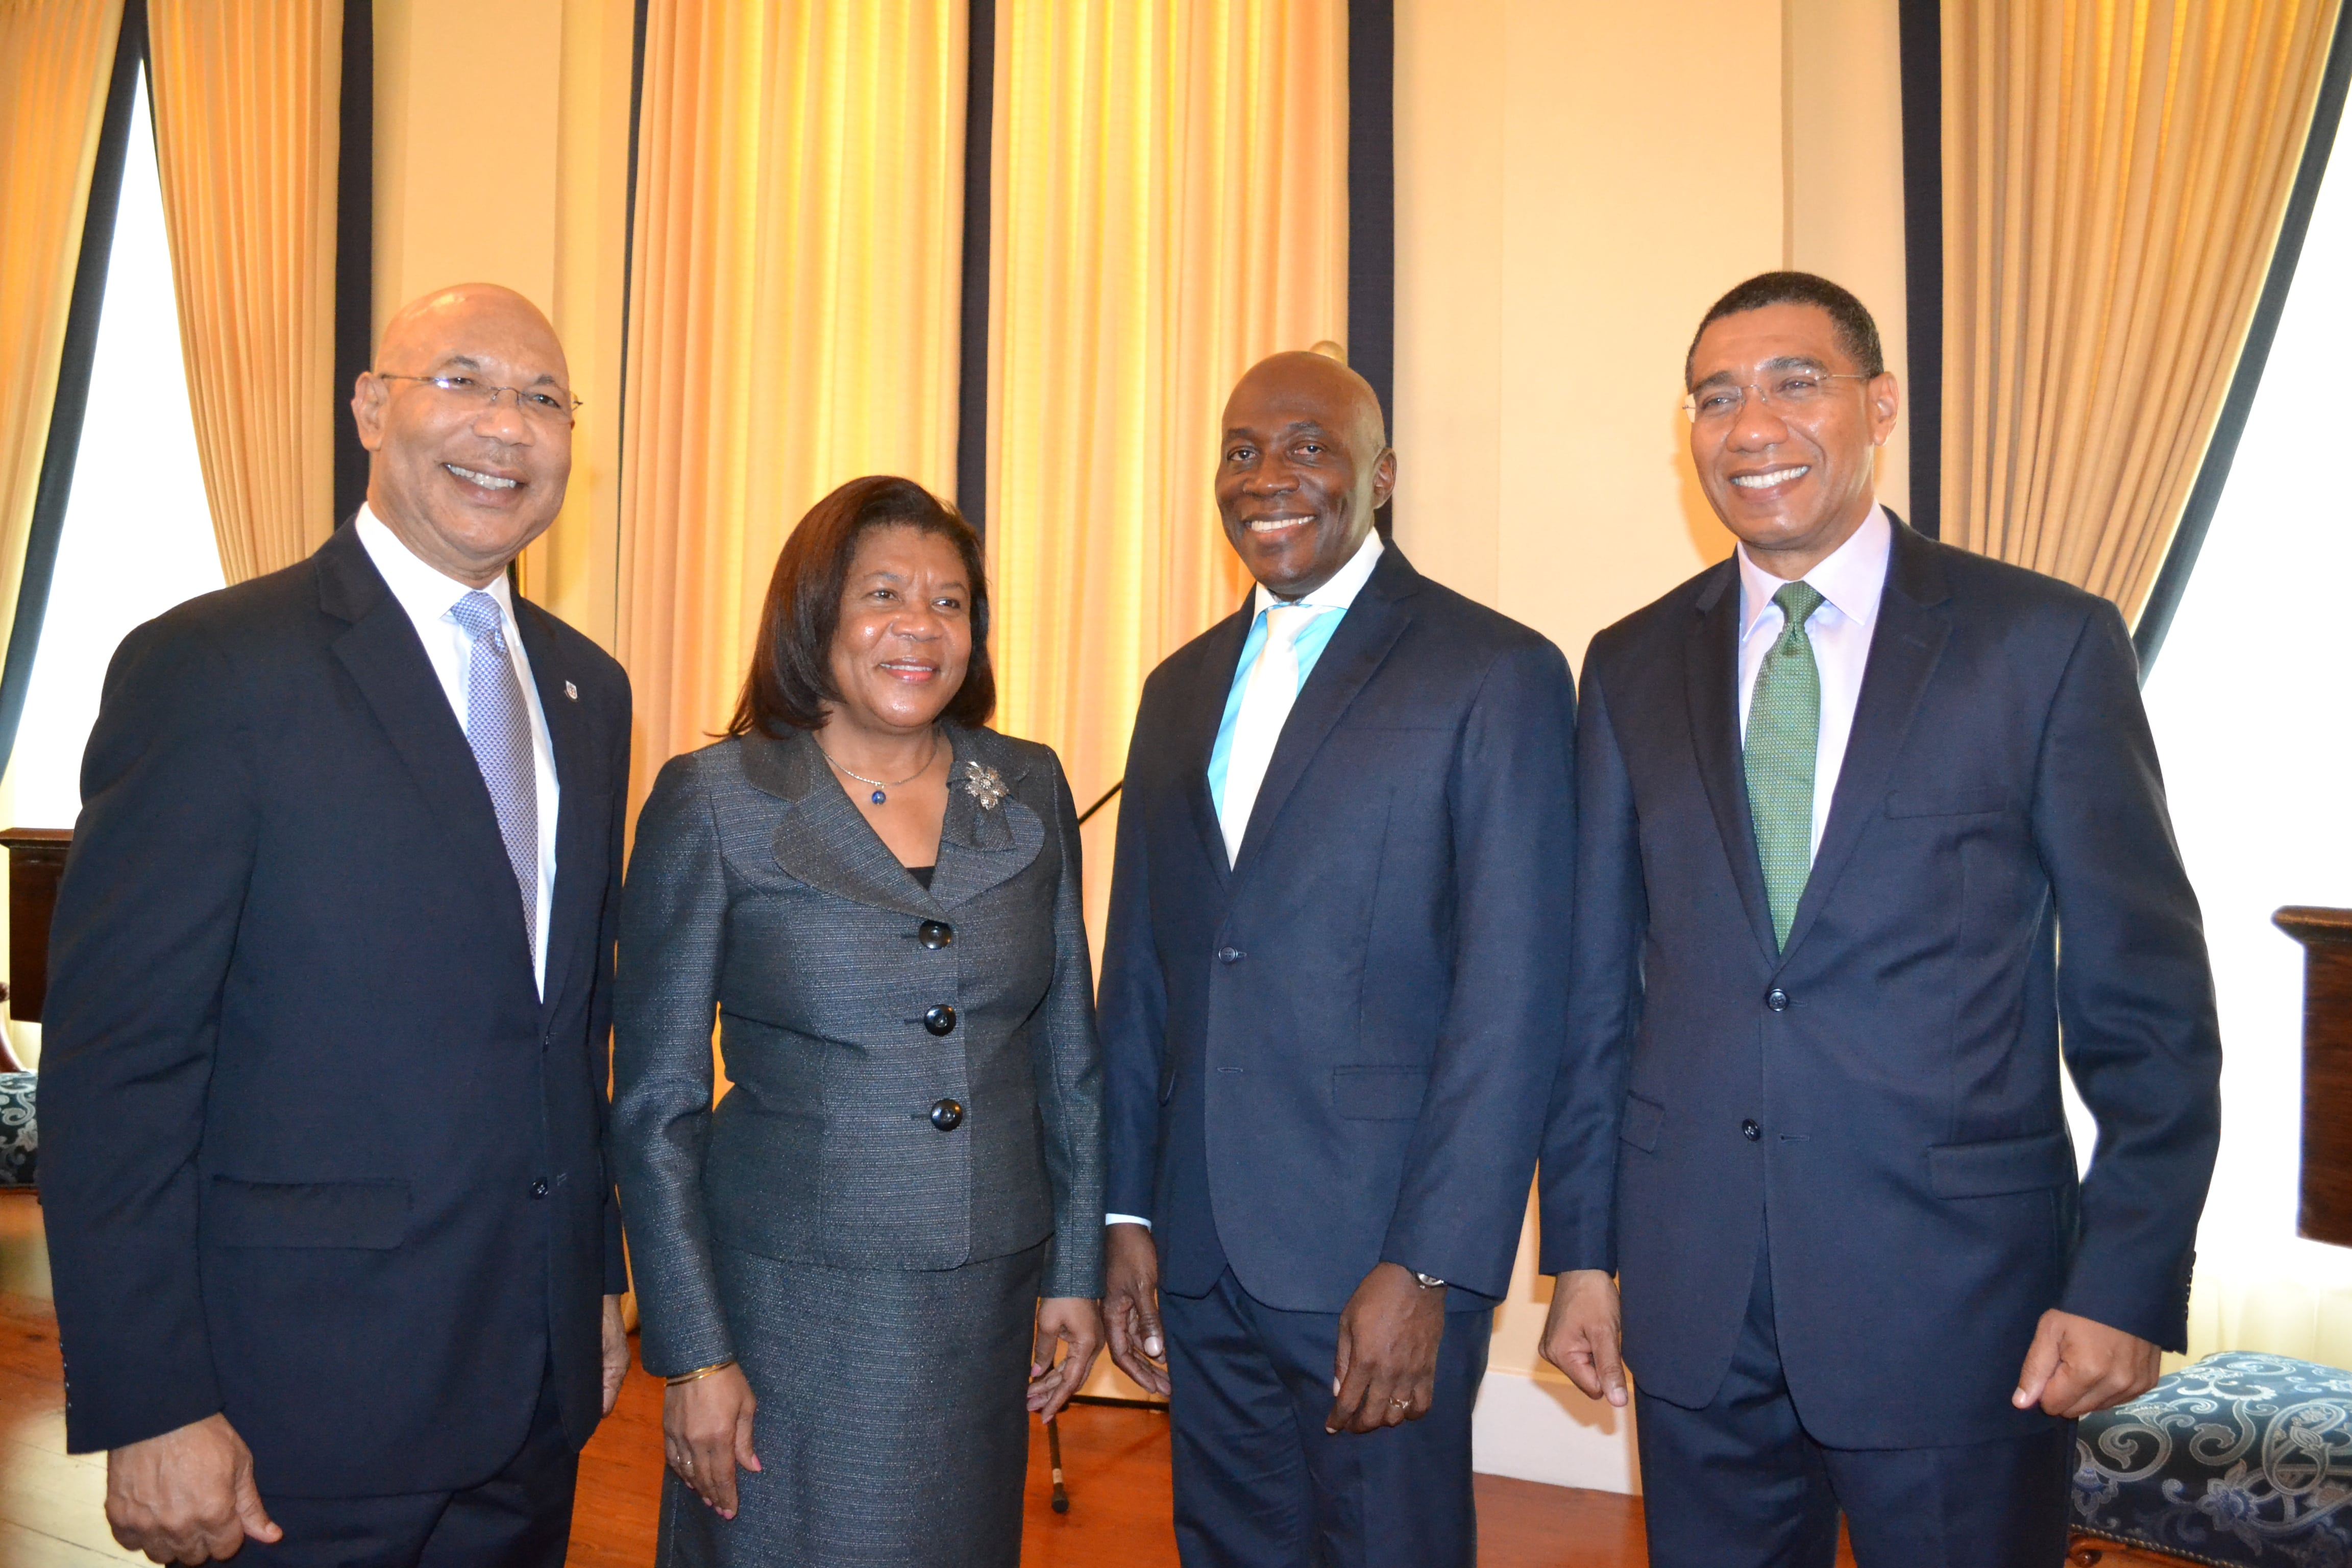 His Excellency The Governor-General (left) shares frame with Prime Minister the Most Honourable Andrew Holness (right), Honourable Mrs. Justice Zaila McCalla, outgoing Chief Justice (2nd left) and the Honourable Mr. Justice Bryan Sykes (2nd right) Acting Chief Justice.